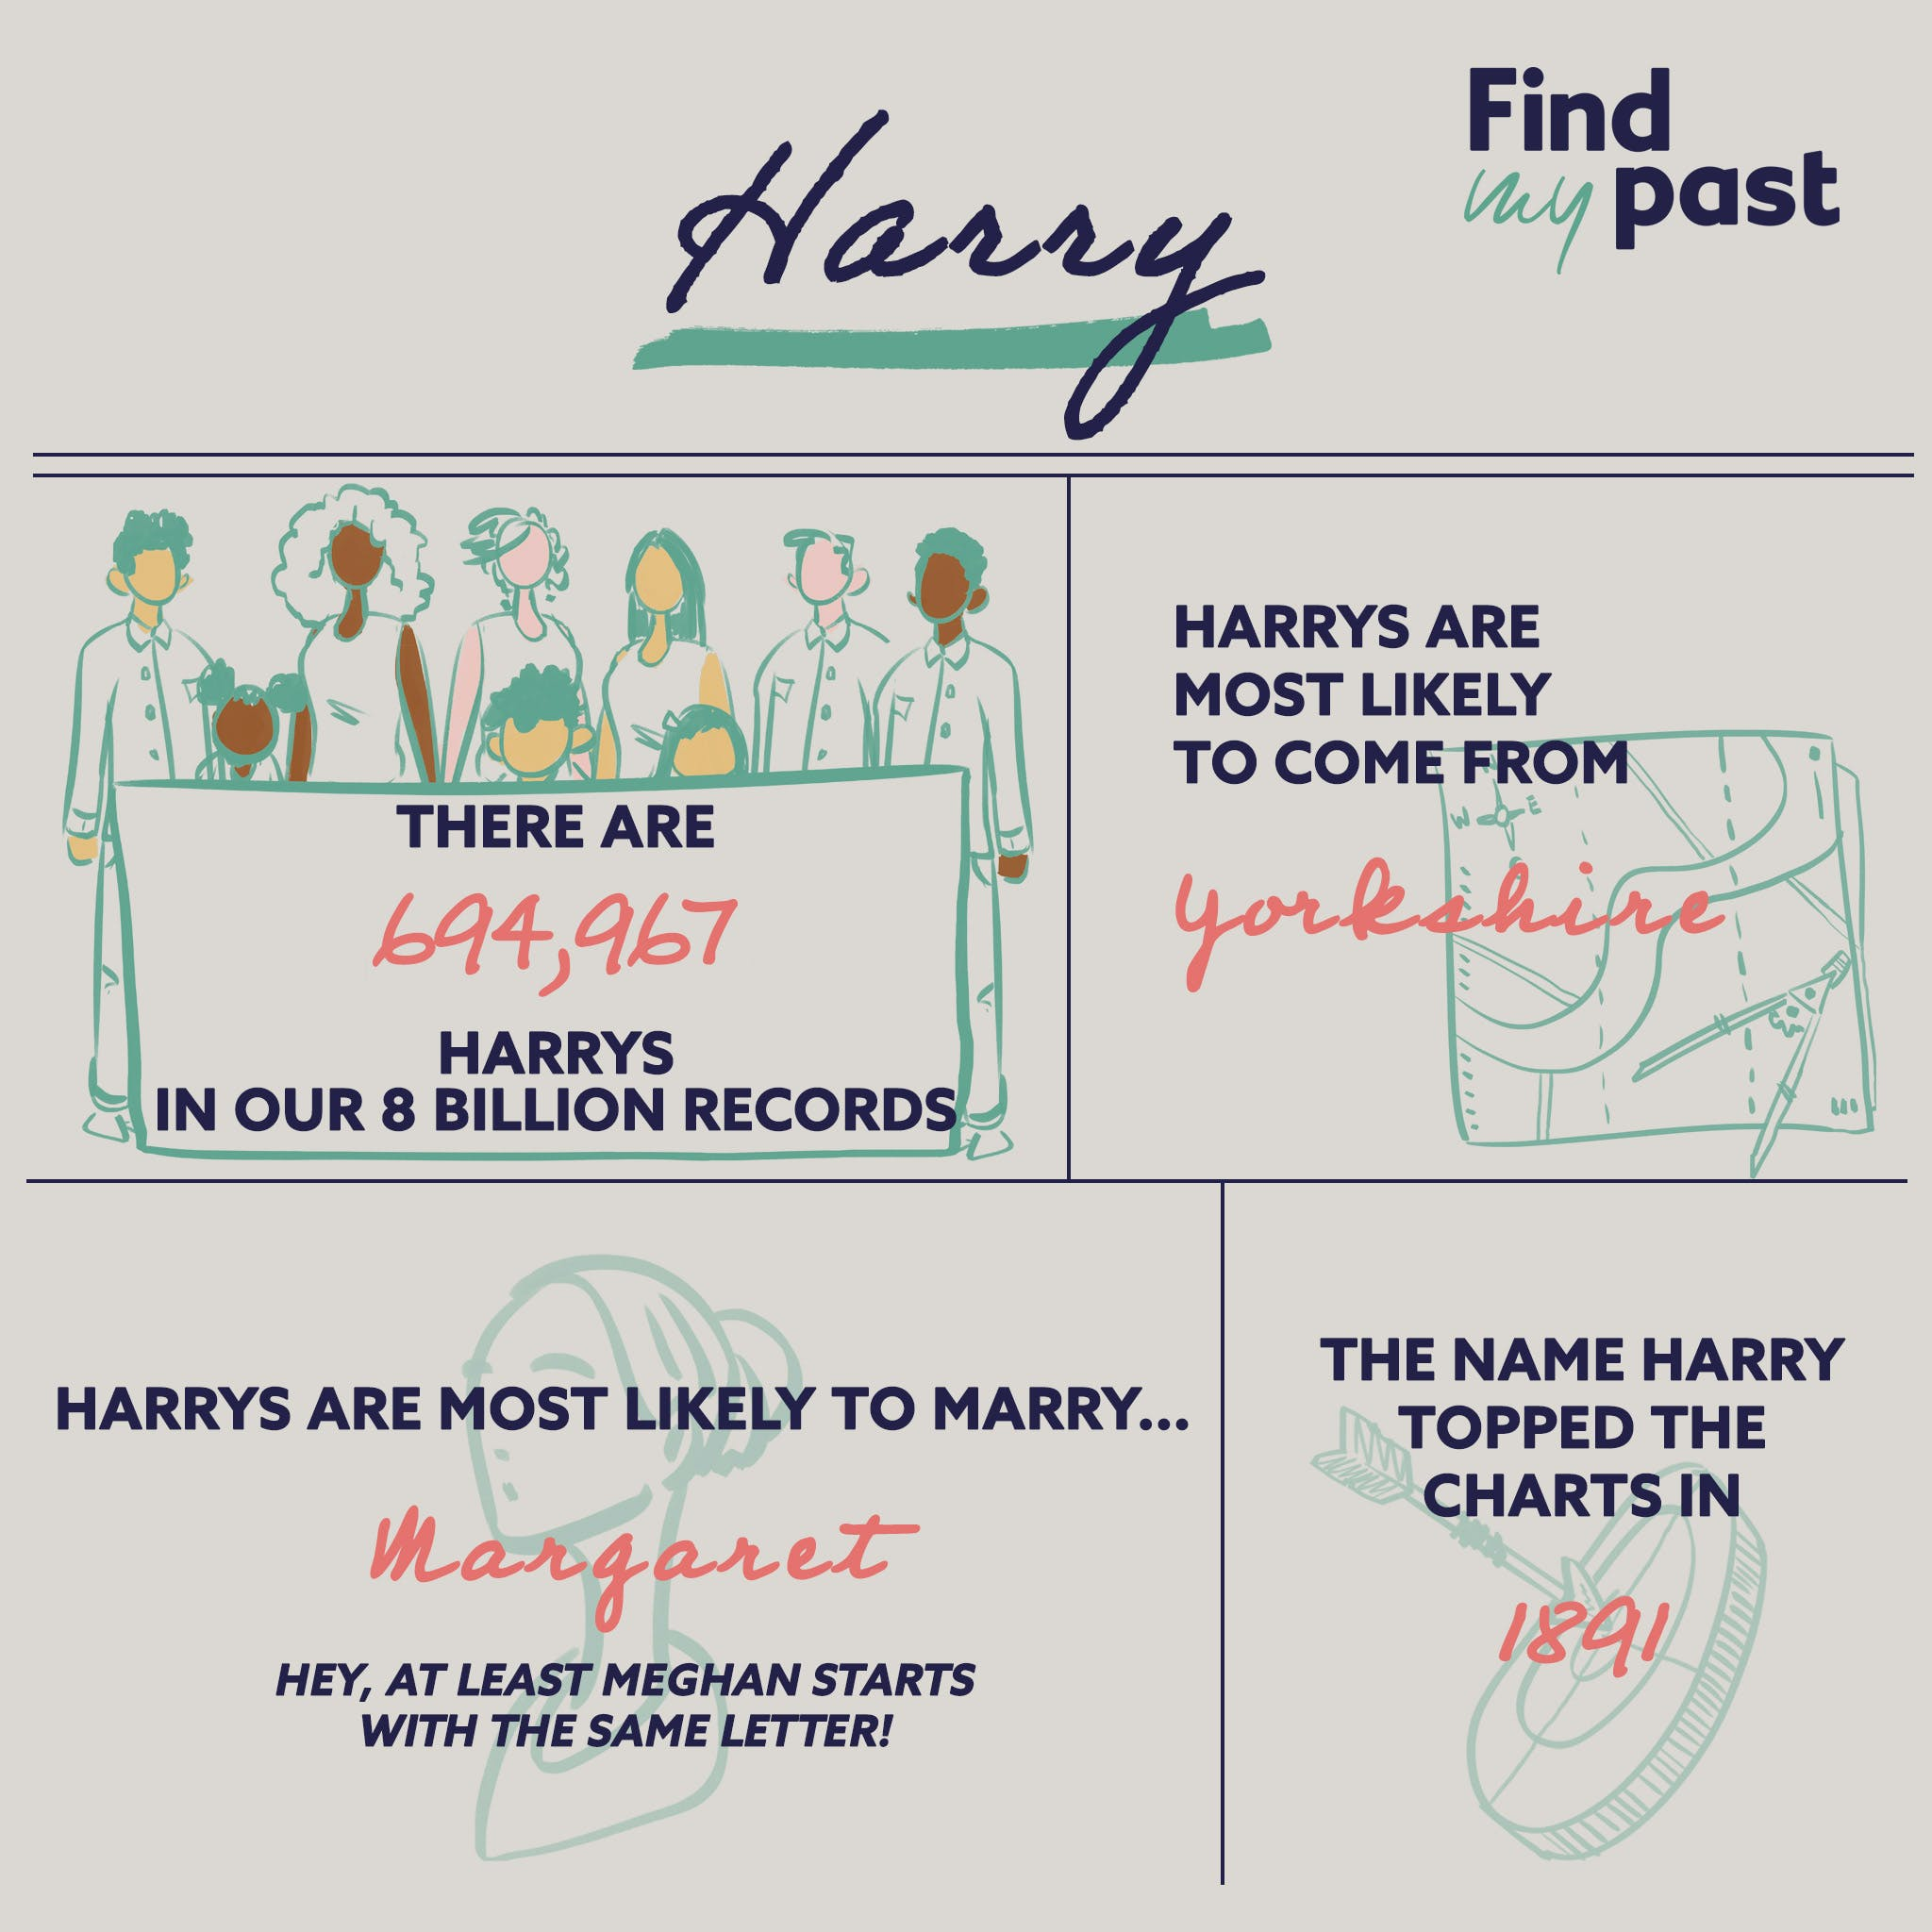 Harry name meaning